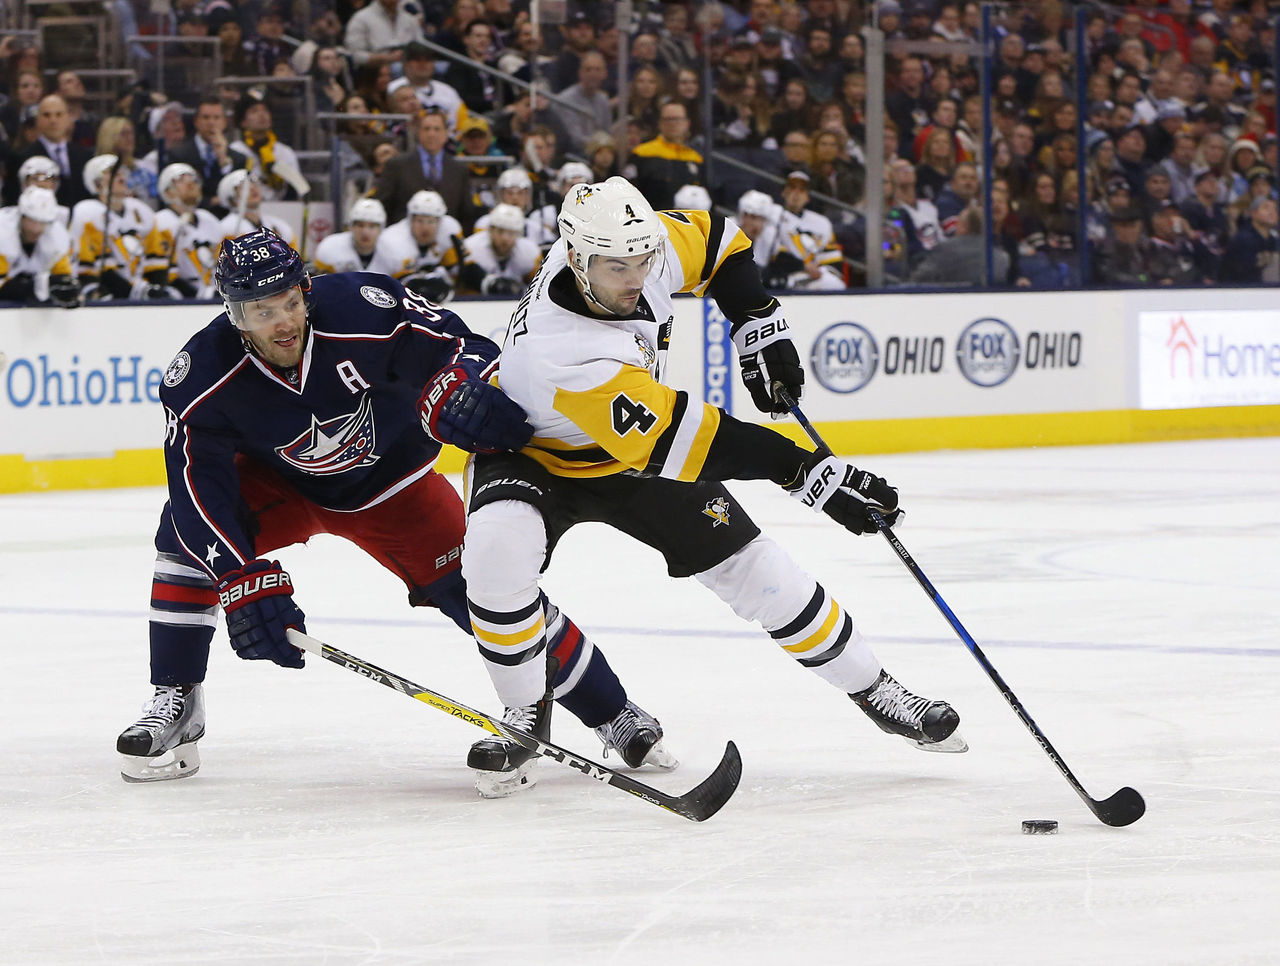 Cropped_2016-12-23t010537z_2062662649_nocid_rtrmadp_3_nhl-pittsburgh-penguins-at-columbus-blue-jackets